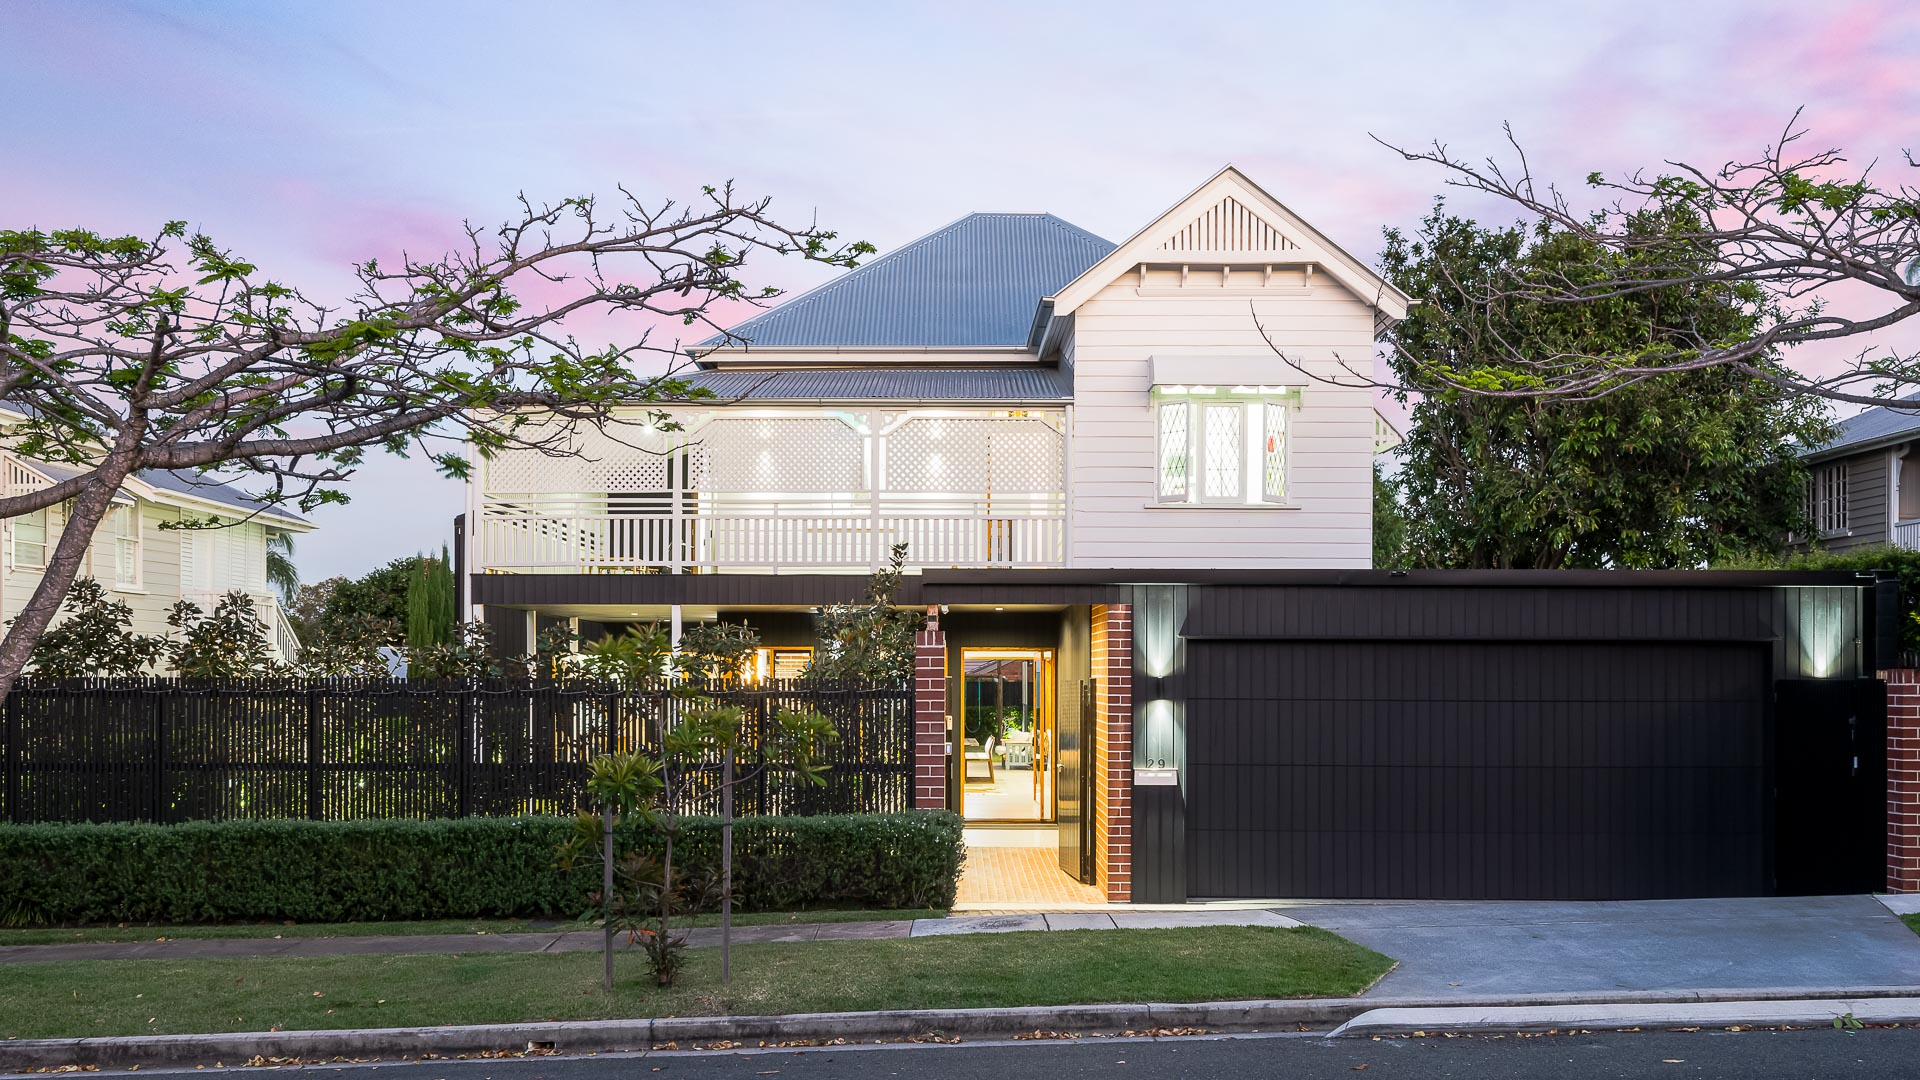 Dublin-St-Clayfield-Brisbane-1.jpg